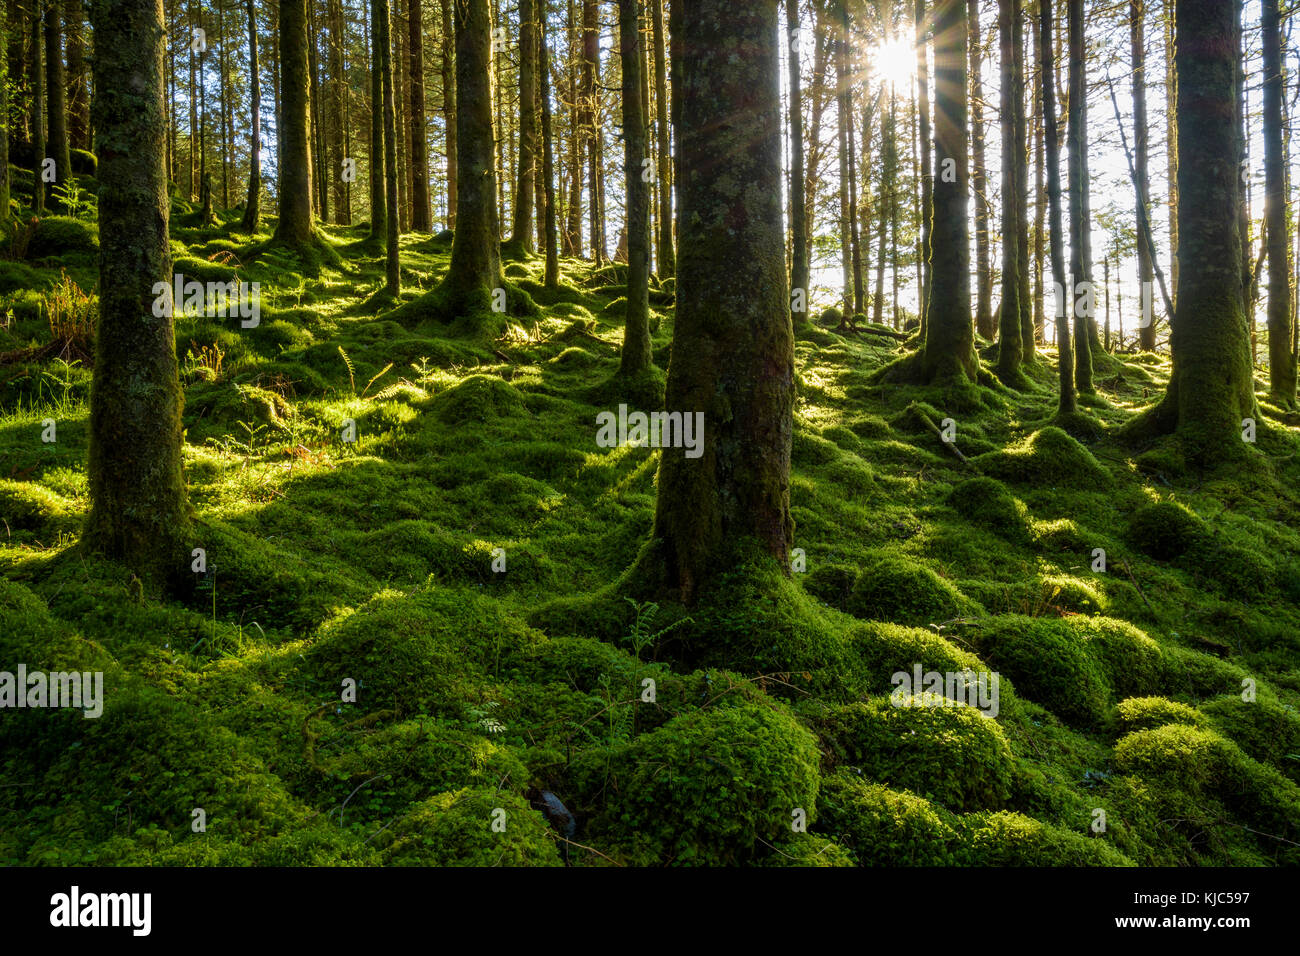 Moss covered ground and tree trunks in a conifer forest with the sun shining through at Loch Awe in Argyll and Bute - Stock Image